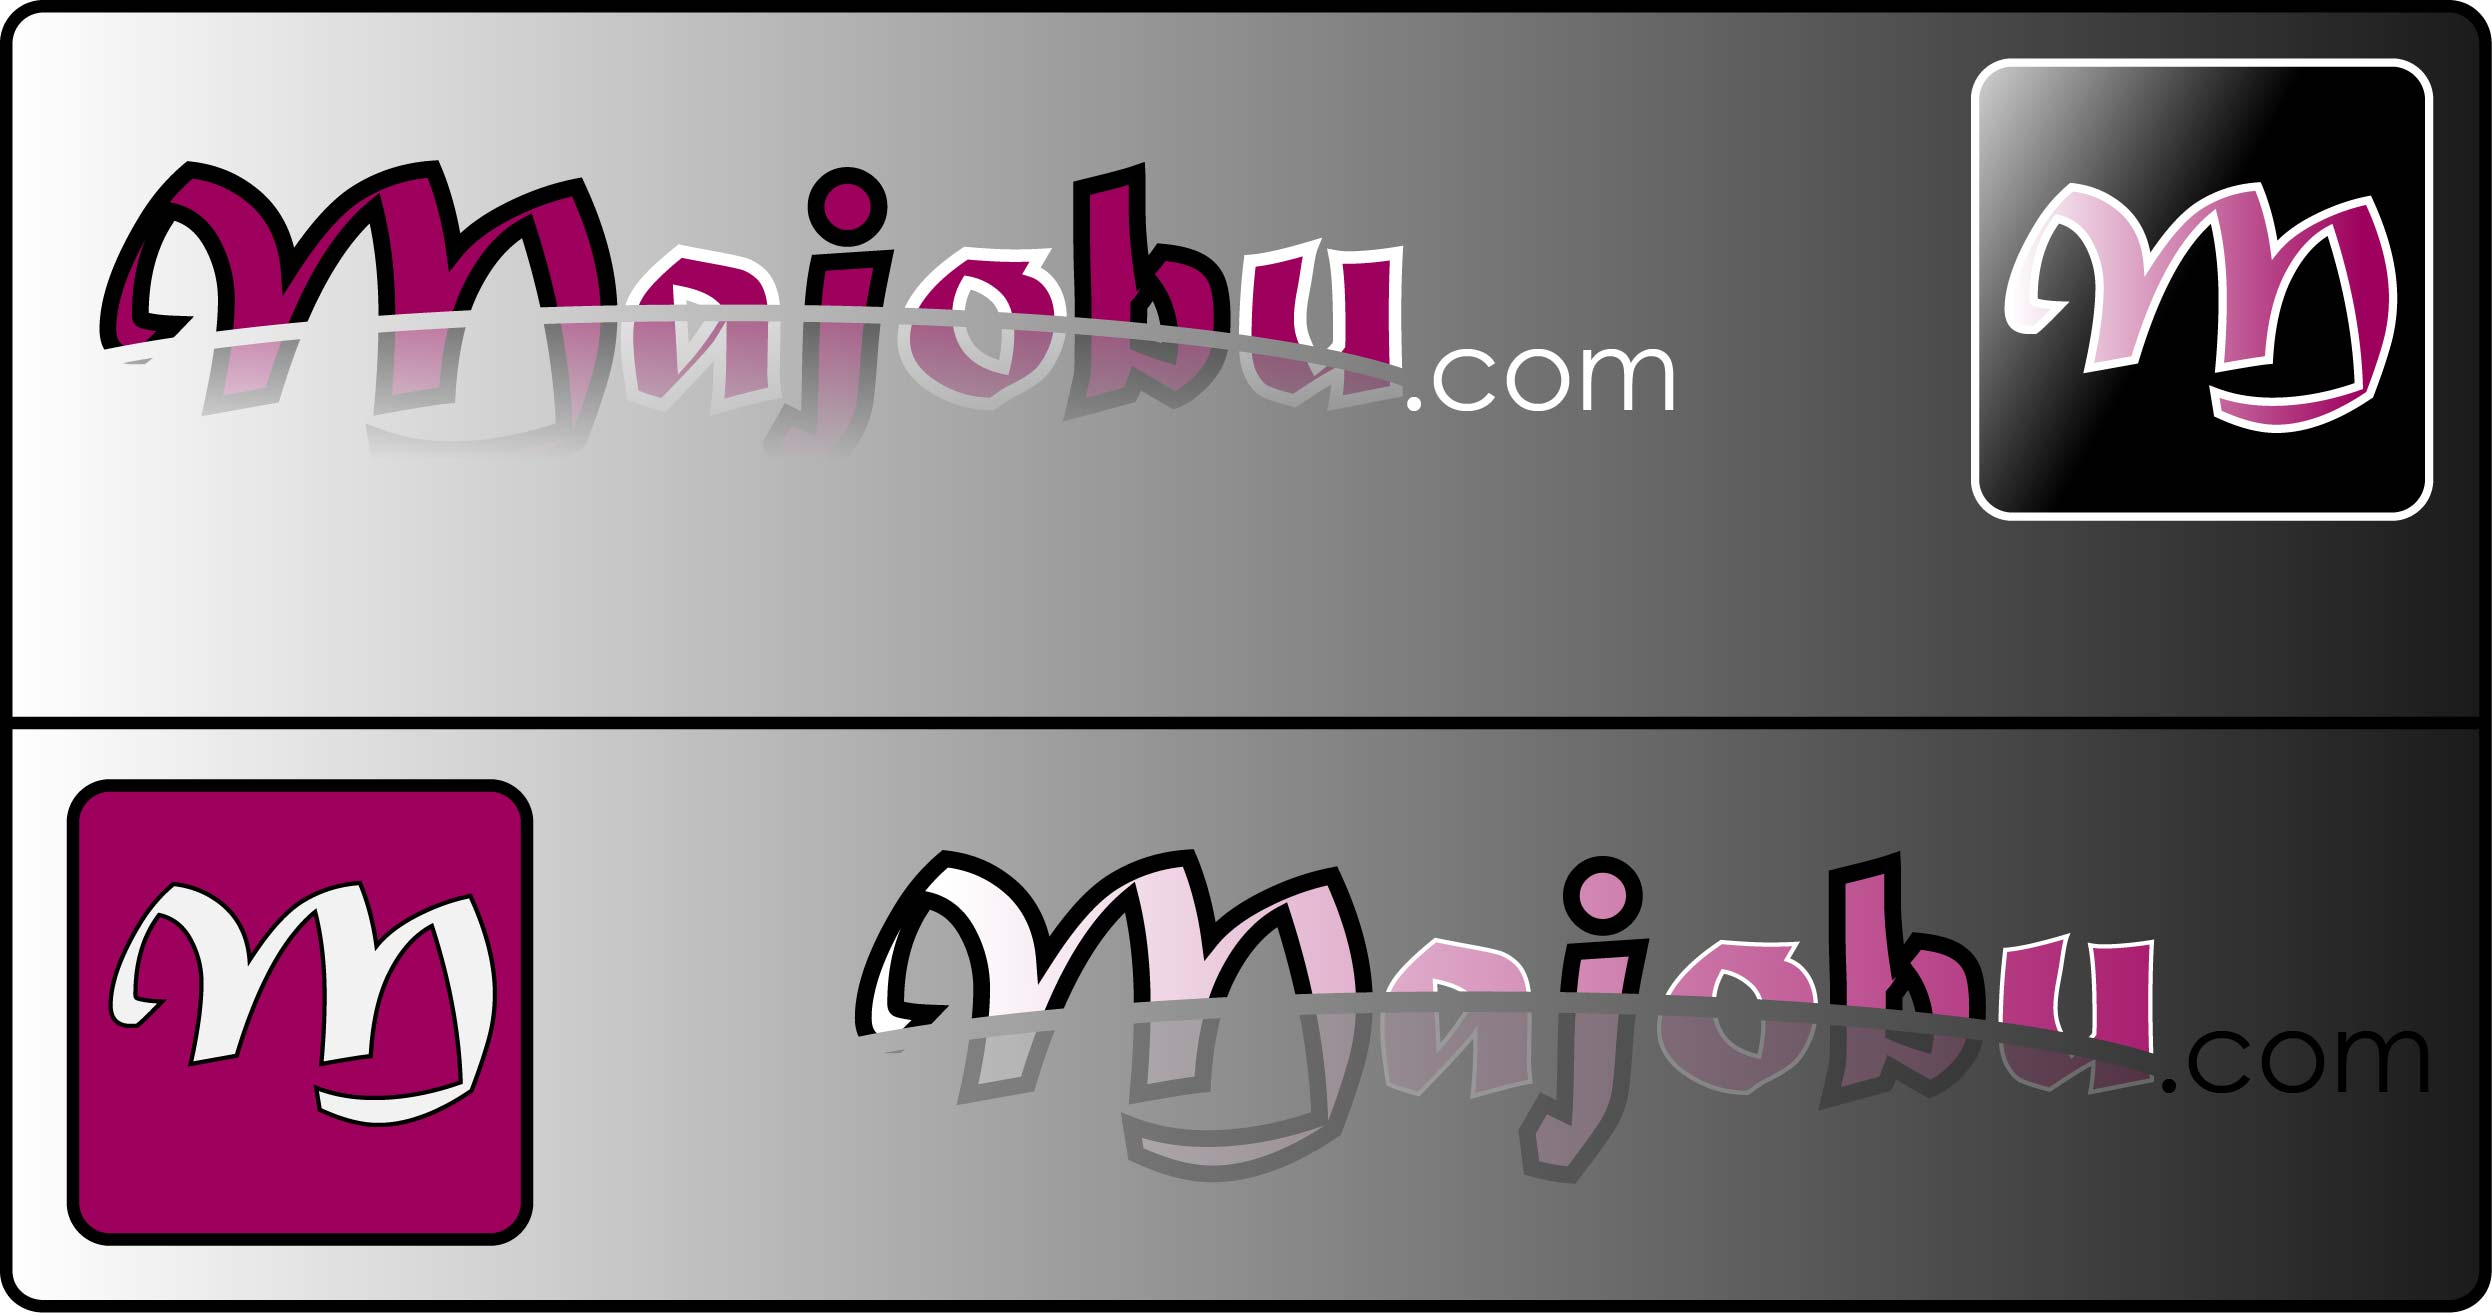 Logo Design by Andy McColm - Entry No. 90 in the Logo Design Contest Inspiring Logo Design for Majobu.